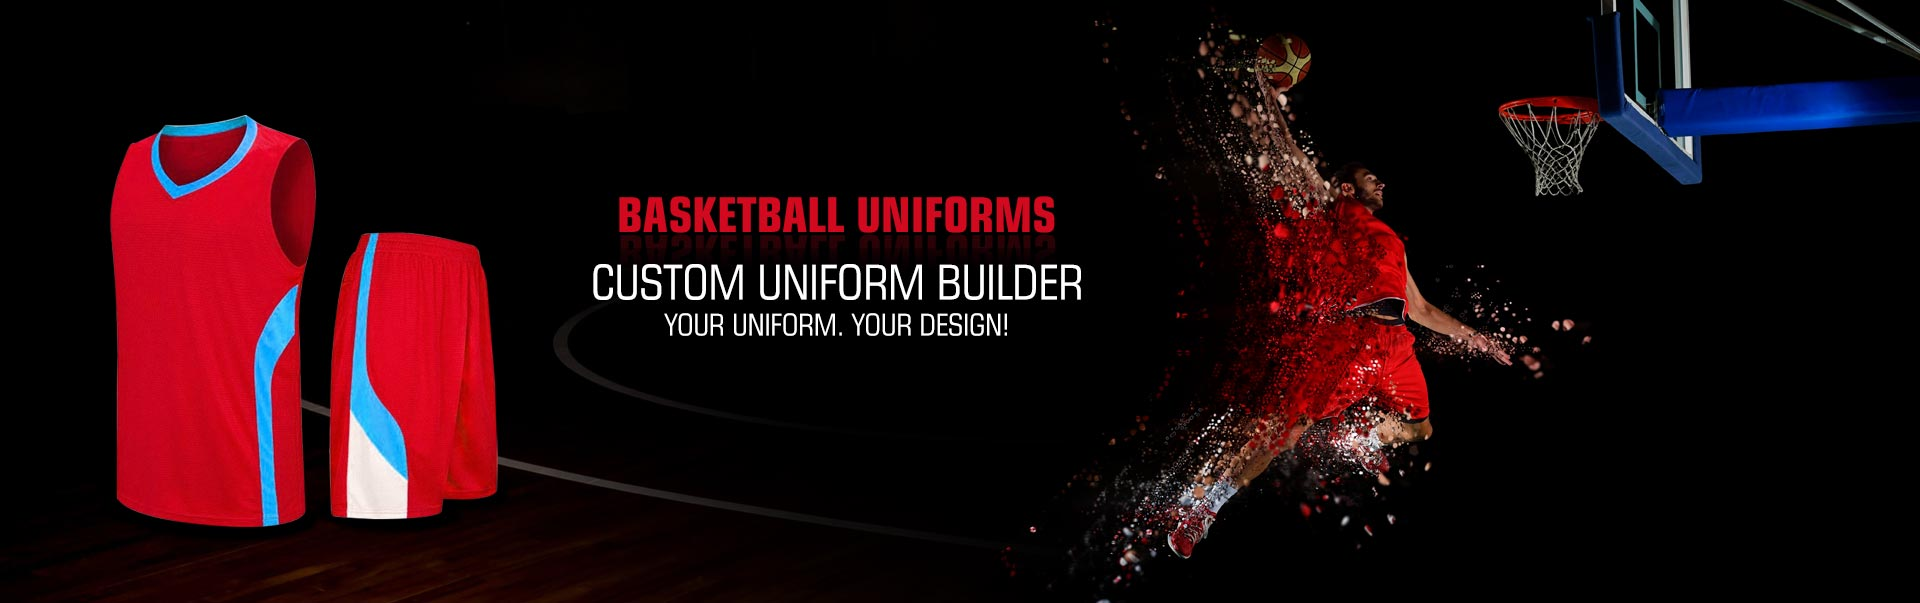 Basketball Uniforms Wholesaler, Suppliers in Valencia